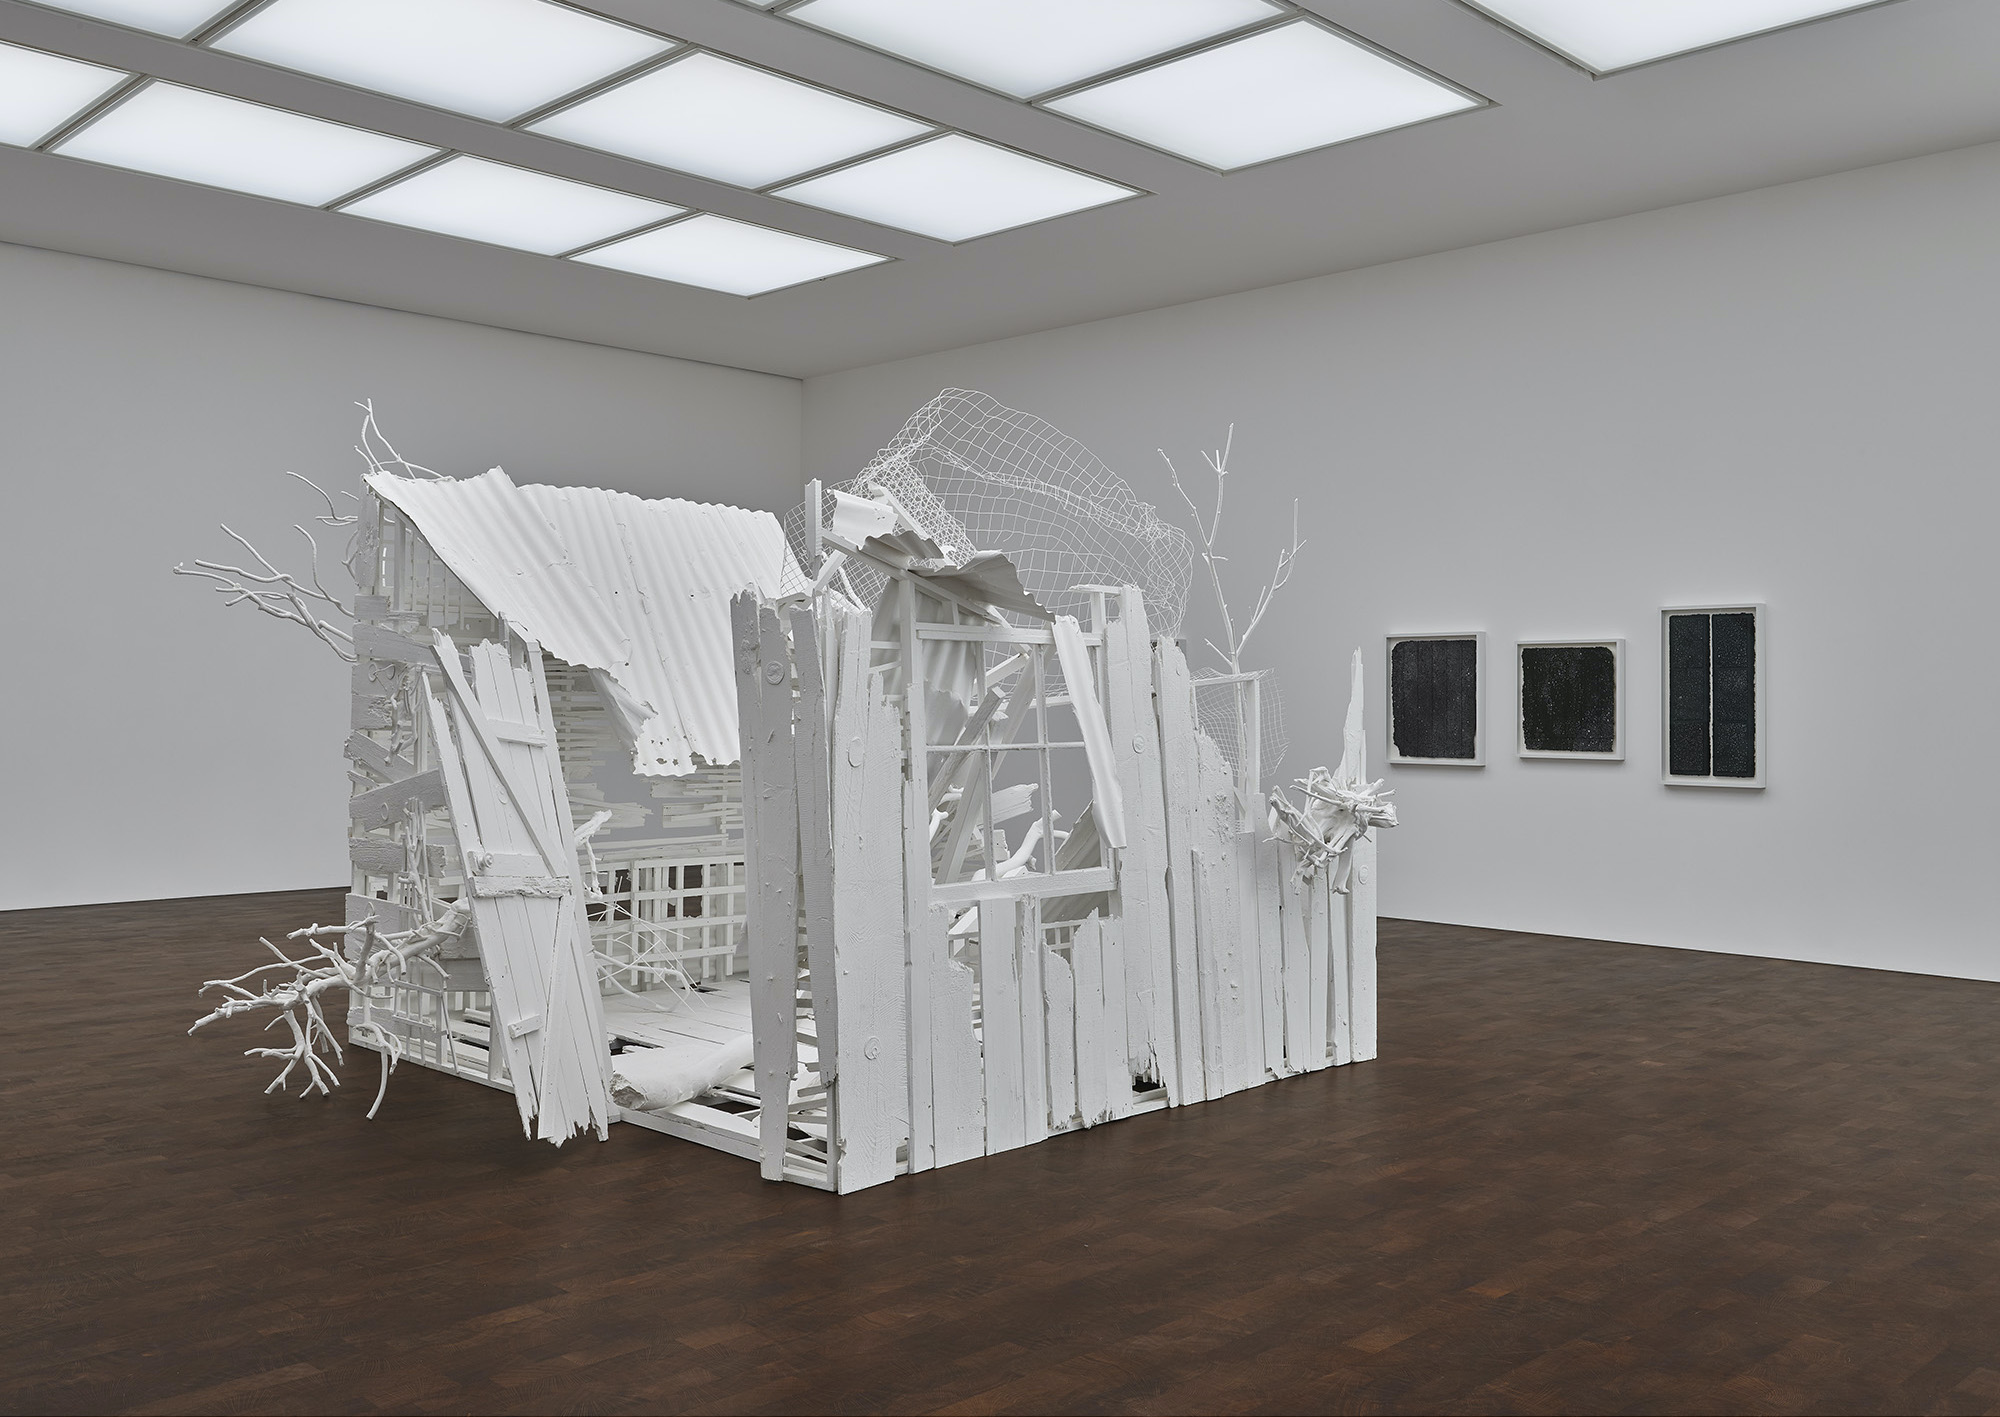 Rachel Whiteread: Internal Objects, installation view , 2021. © Rachel Whiteread. Photo: Prudence Cuming Associates. Courtesy Gagosian